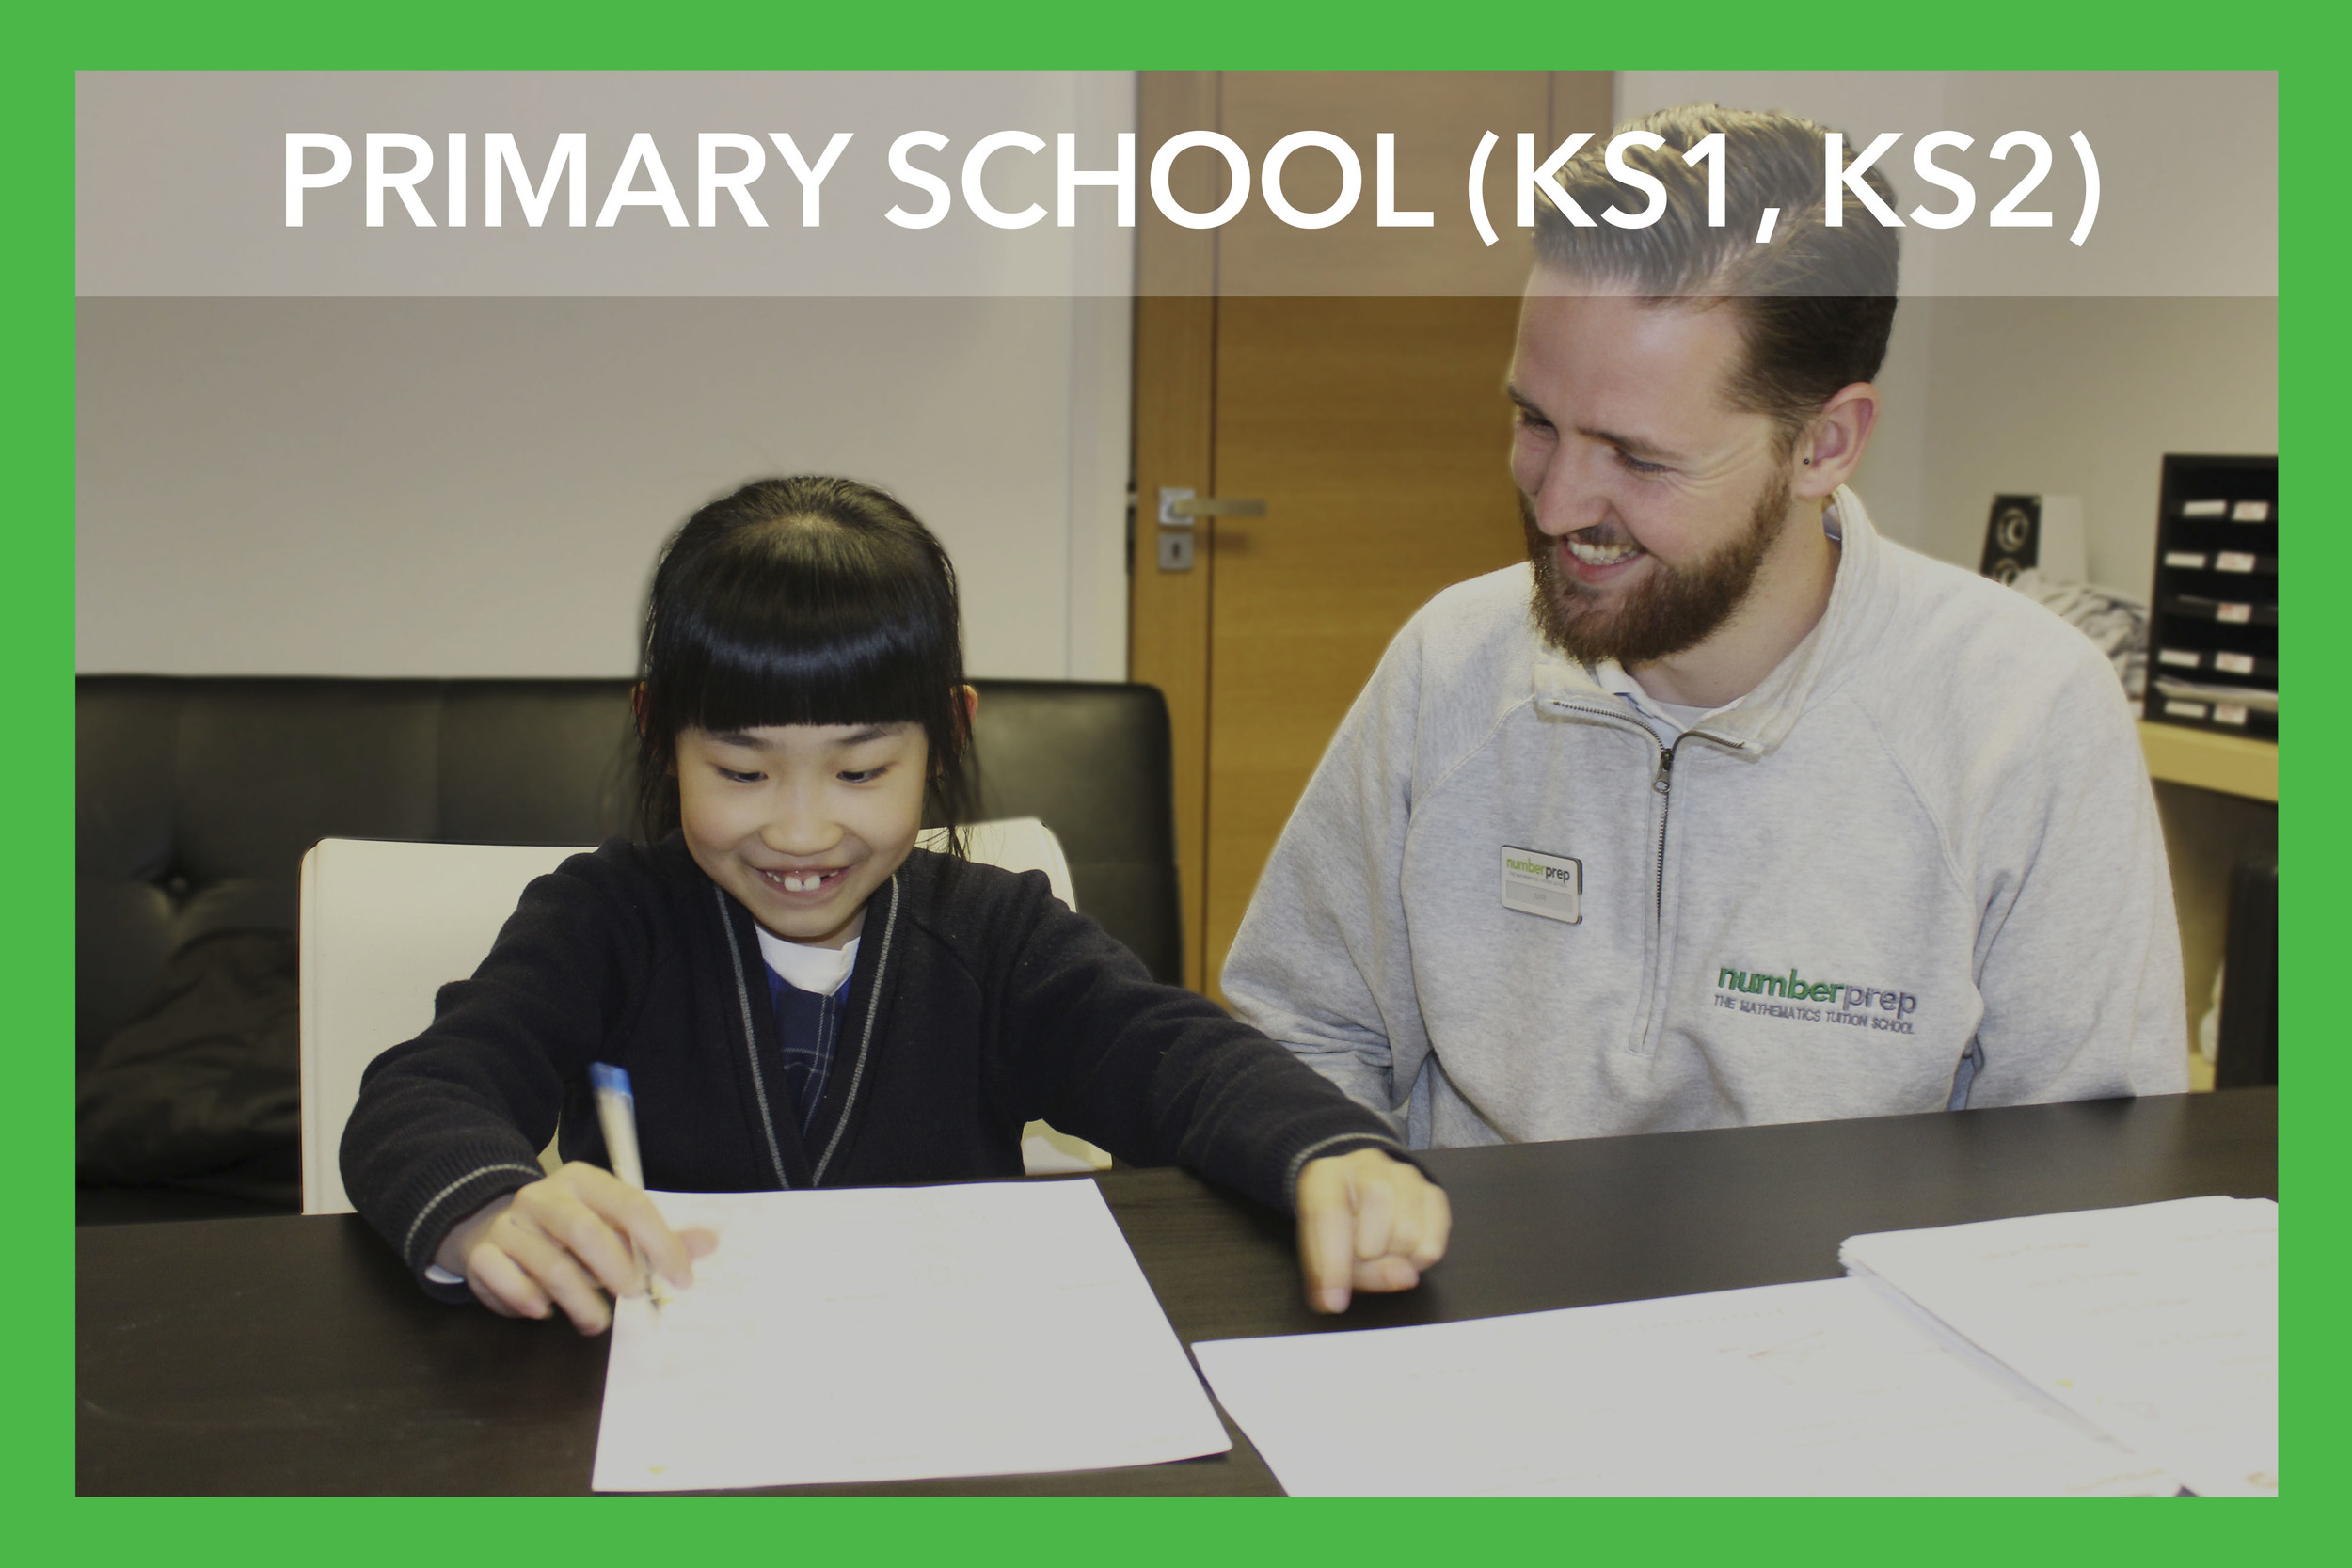 At Primary school your child will experience Maths in a classroom format for the first time, and it will be at this stage that they begin to decide whether they enjoy the subject. At Numberprep our tutors hands on approach helps our students to build confidence and intrigue whilst closely following the National Curriculum. Creative lesson plans and unique hands on activities ensure our students fully understand key mathematical concepts in an engaging and enjoyable environment helping to build the foundations for success in the subject.   Topics - Numbers, Shape, Measures, Handling Data